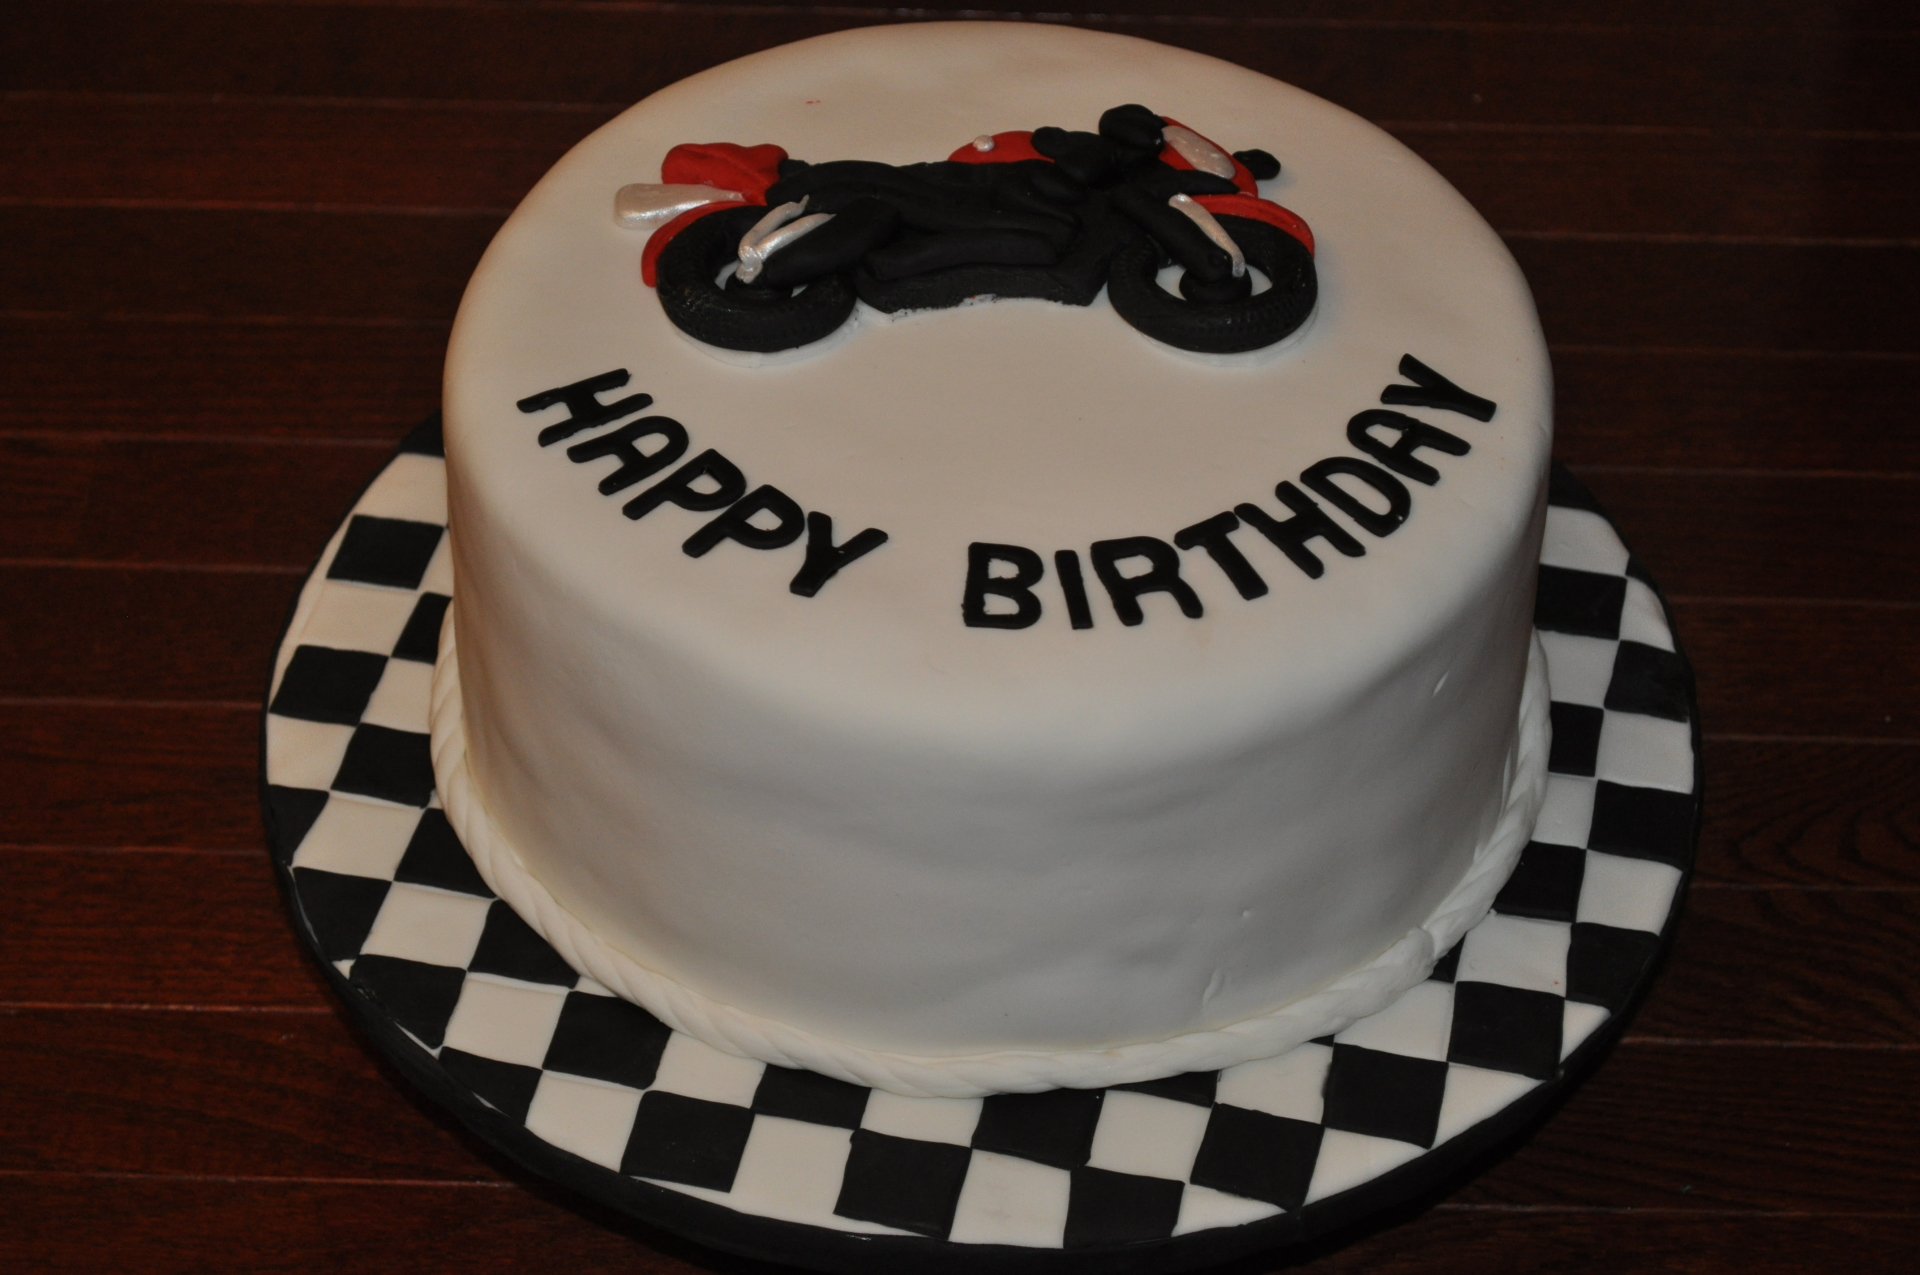 Bike cake,Motorcycle cake